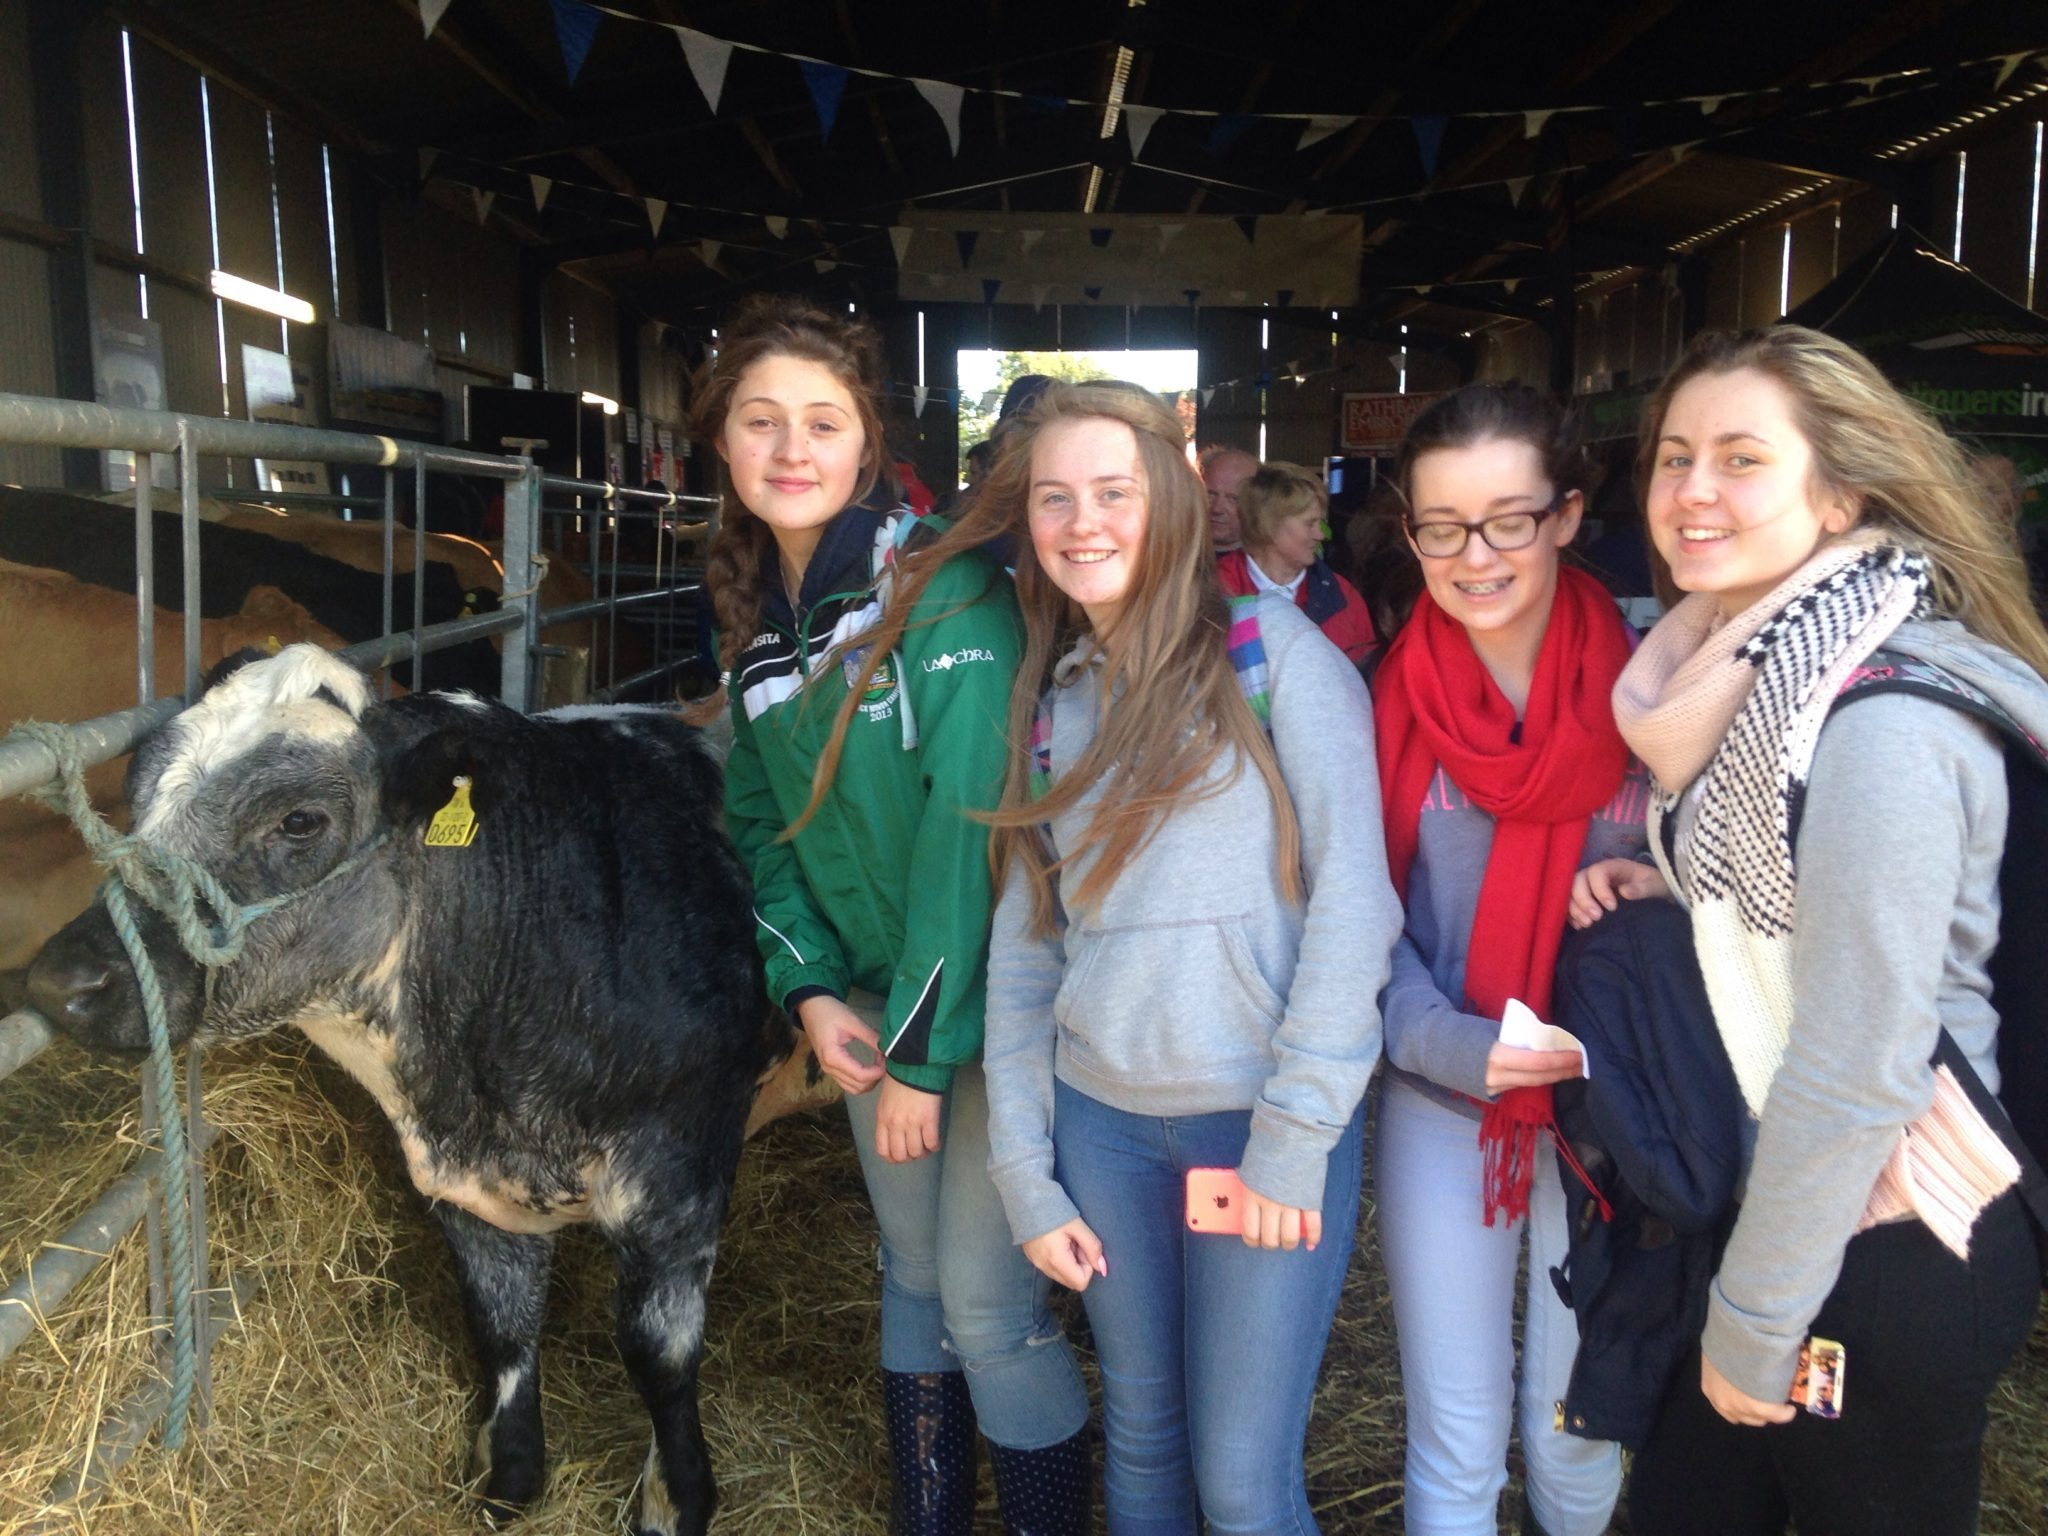 Ploughing 2015: Desmond College TY Students checking livestock